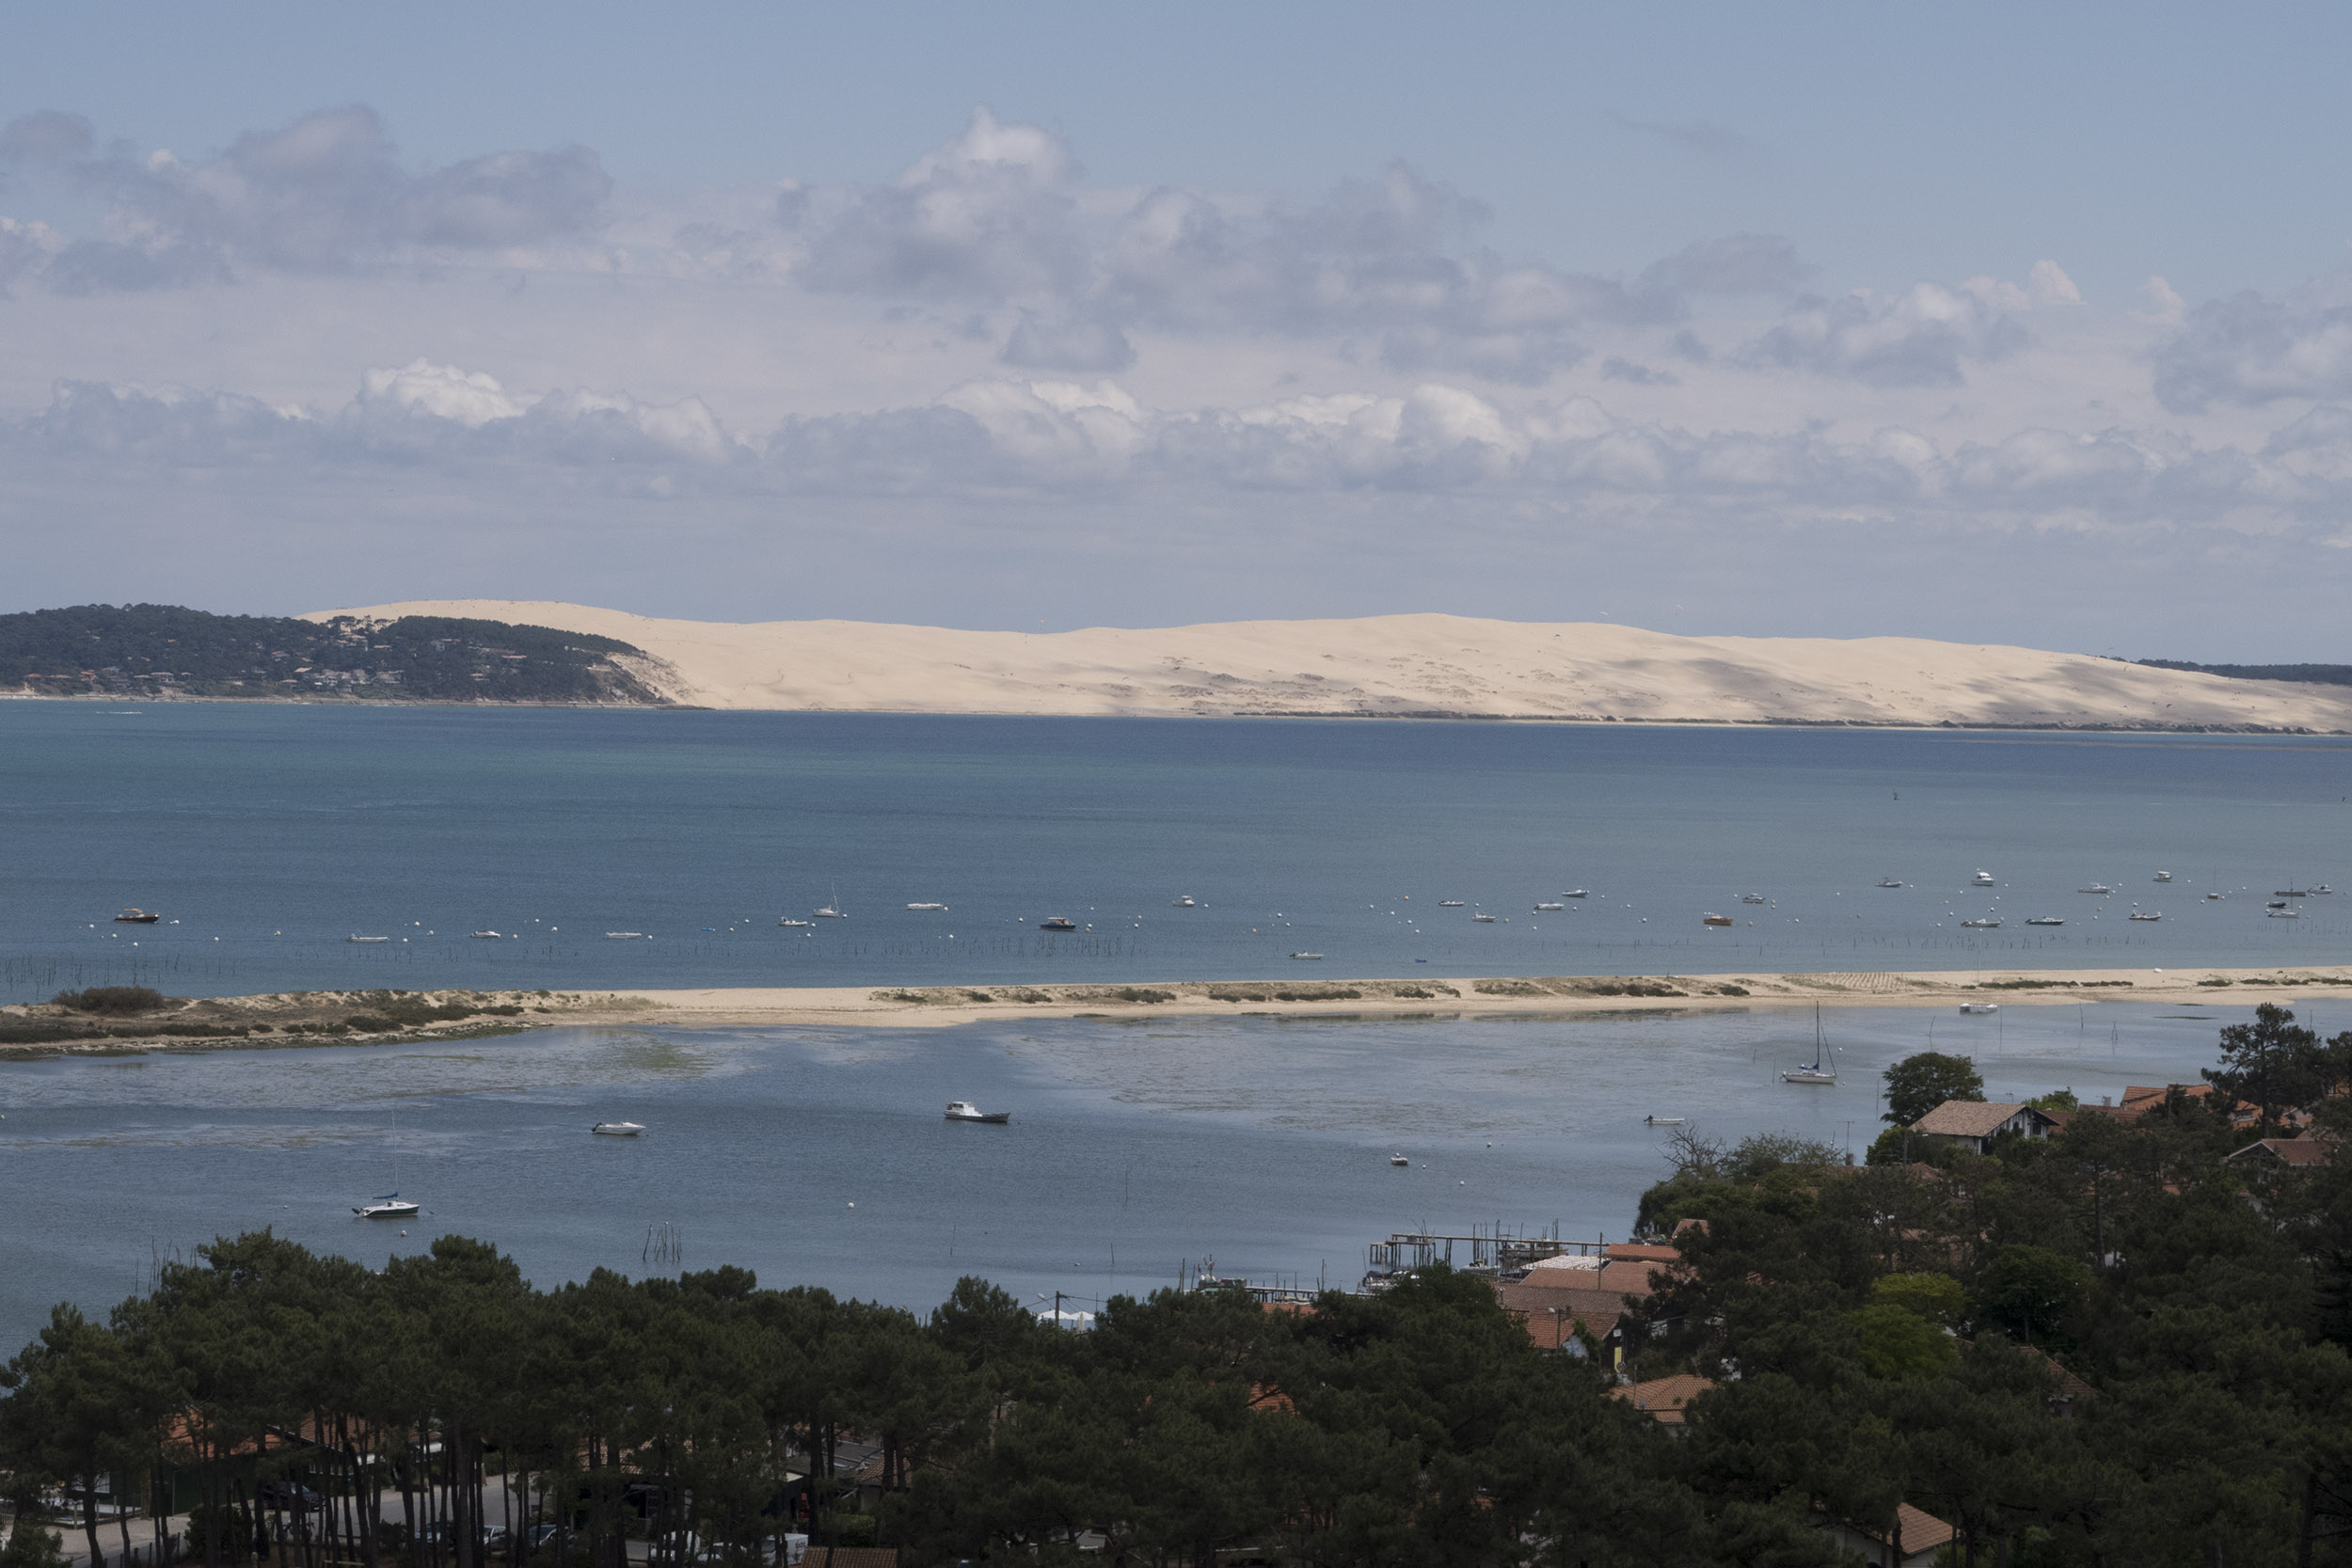 The Dune de Plya as seen from Cap Ferret. We have a day trip there from Arcachon